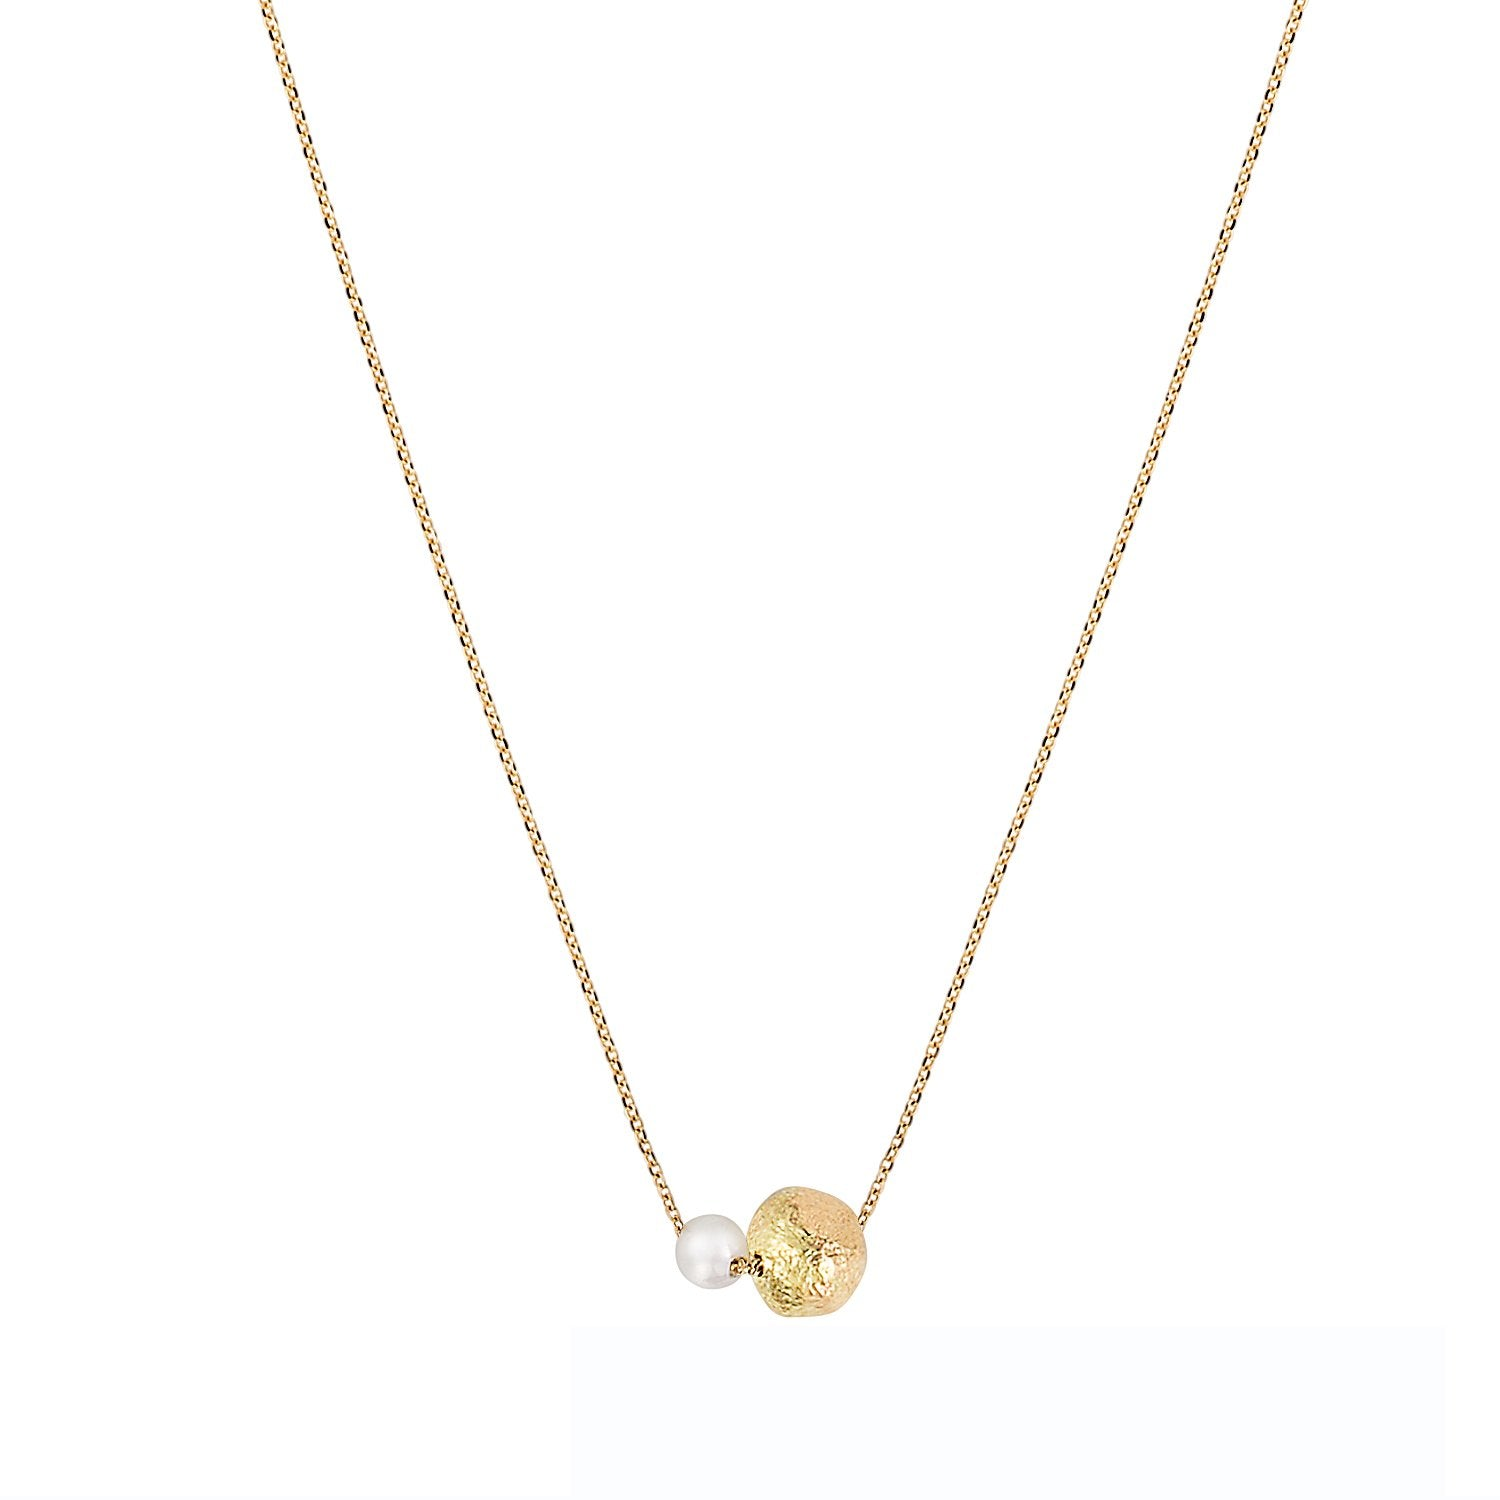 Vincents Fine Jewelry | Sweet Pea | Short Chain With Pearls